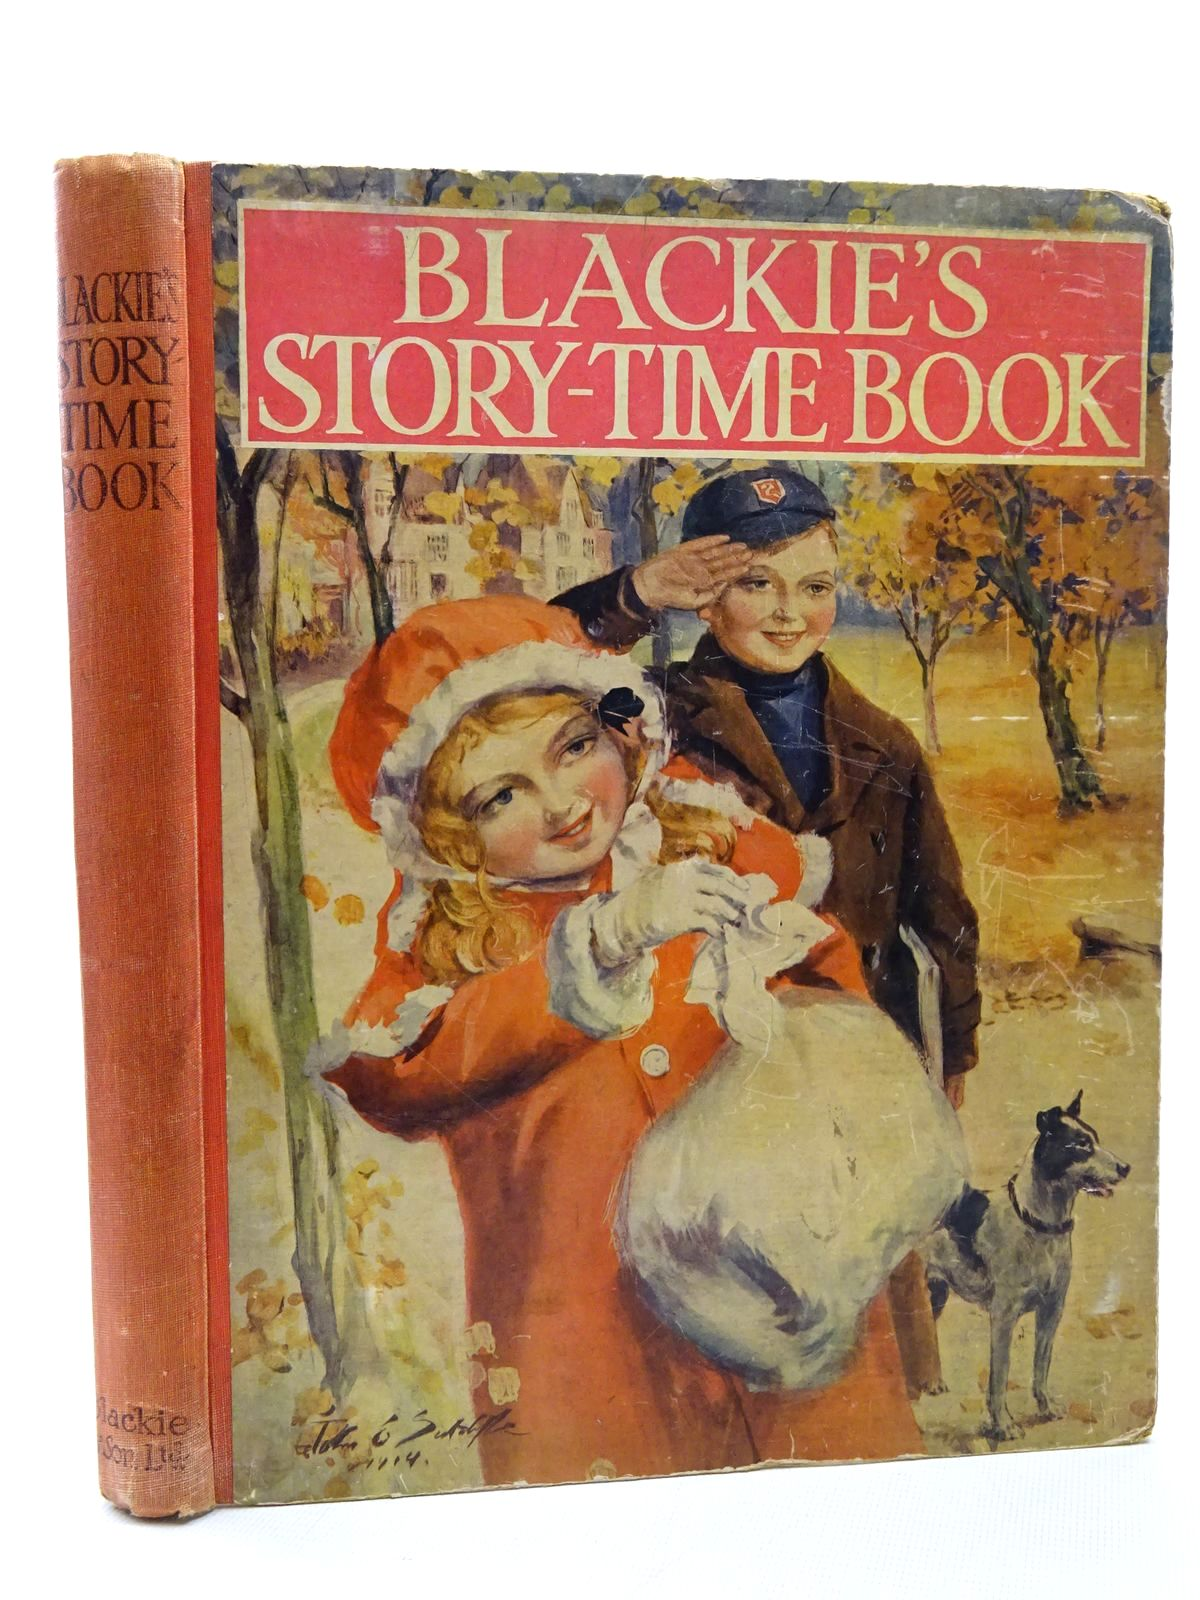 Photo of BLACKIE'S STORY-TIME BOOK written by Tent, Chris Davidson, Gladys Wilson, Theodora Wilson Byron, May Harrison, Florence et al, illustrated by Richardson, Agnes Maybank, Thomas Earnshaw, Harold C. Wain, Louis Harrison, Florence Buchanan, N. Cowham, Hilda Brock, H.M. et al., published by Blackie & Son Ltd. (STOCK CODE: 2124405)  for sale by Stella & Rose's Books